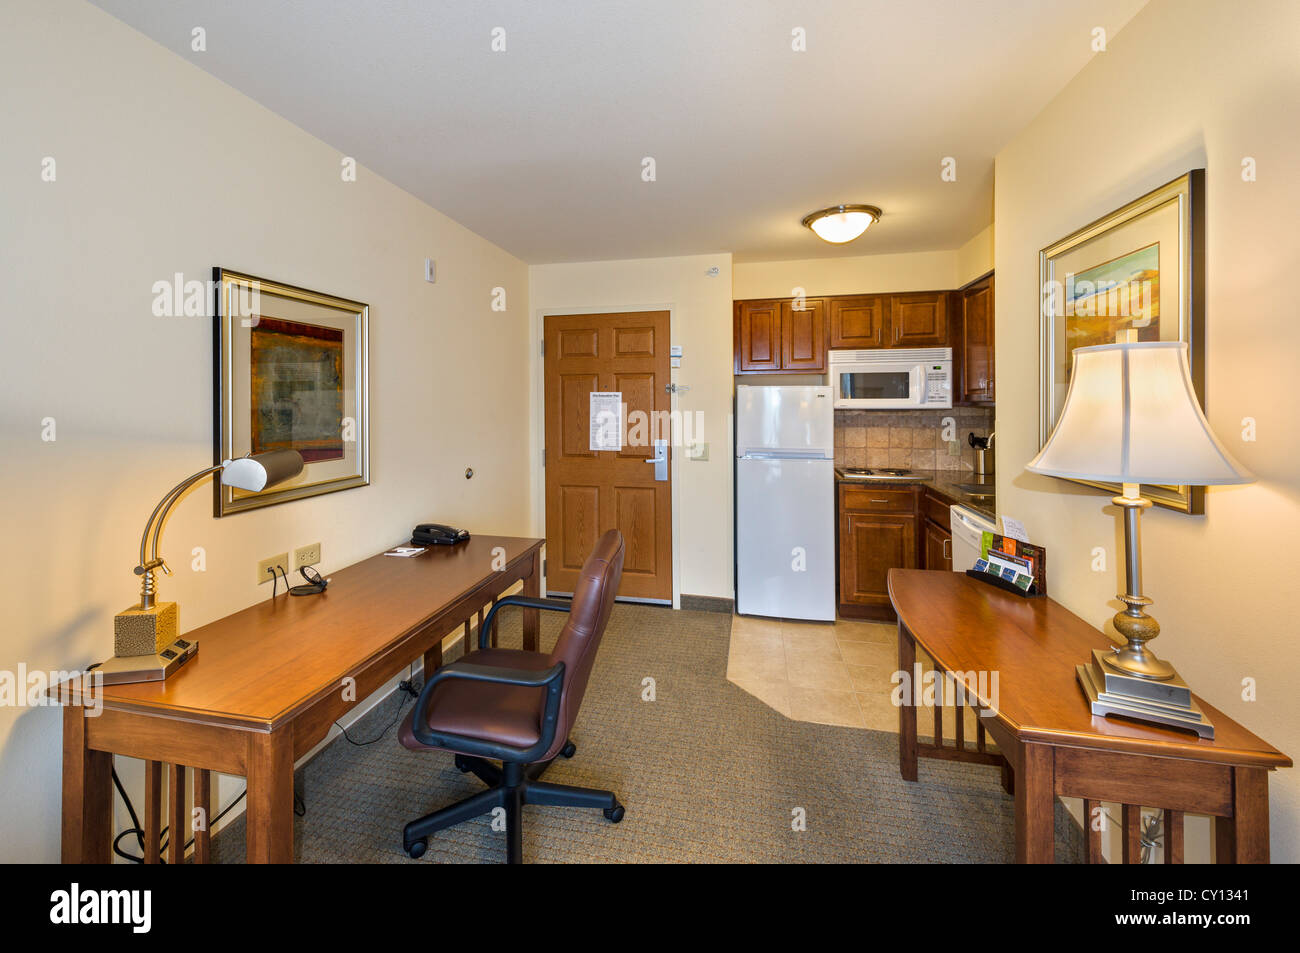 Kitchen and work area of a Standard Queen Suite in the Staybridge Suites, Oconomowoc, Wisconsin, USA - Stock Image